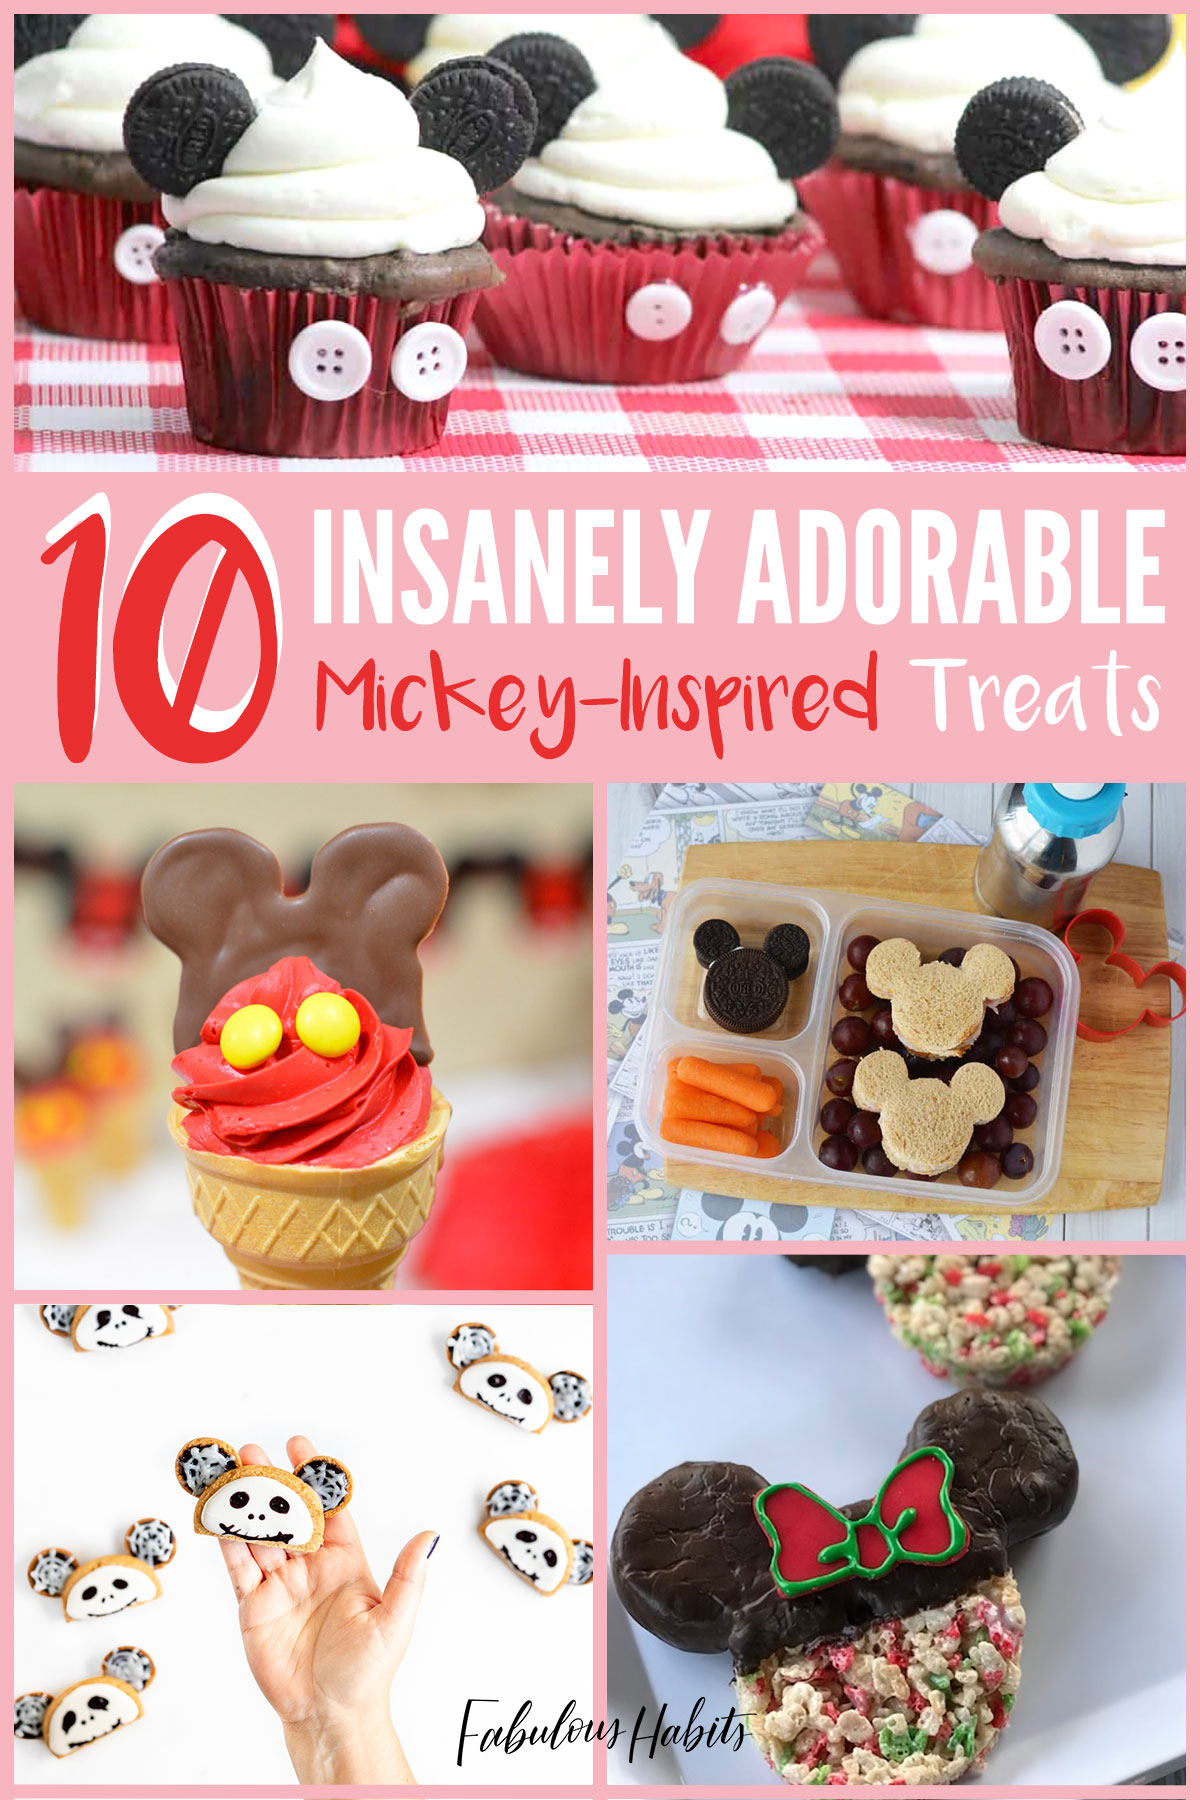 After our magical trip to WDW, we're feeling Disney-withdrawl so we decided to round-up 10 of the cutest Mickey-Inspired treats we could find! #disneyinspiredrecipes